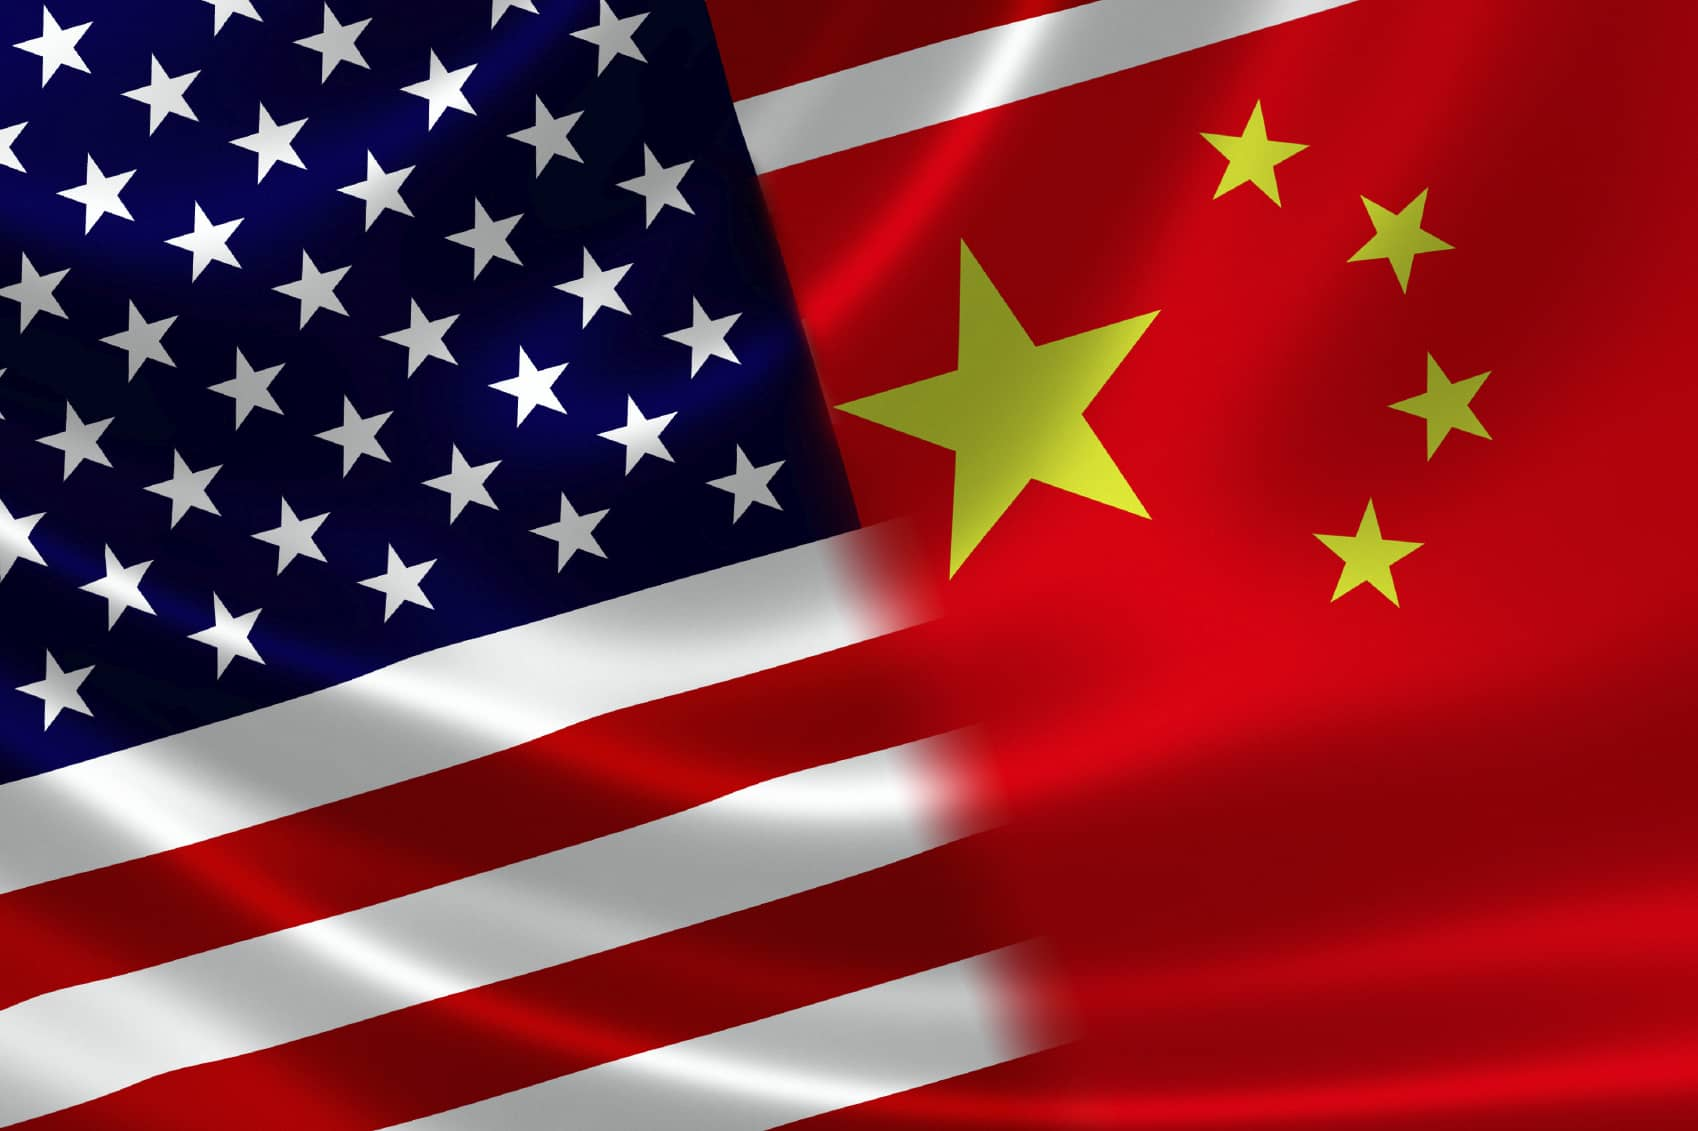 iStock_000045302380_Medium Report: U.S. Polysilicon Makers Miss Out On Demand Surge In China